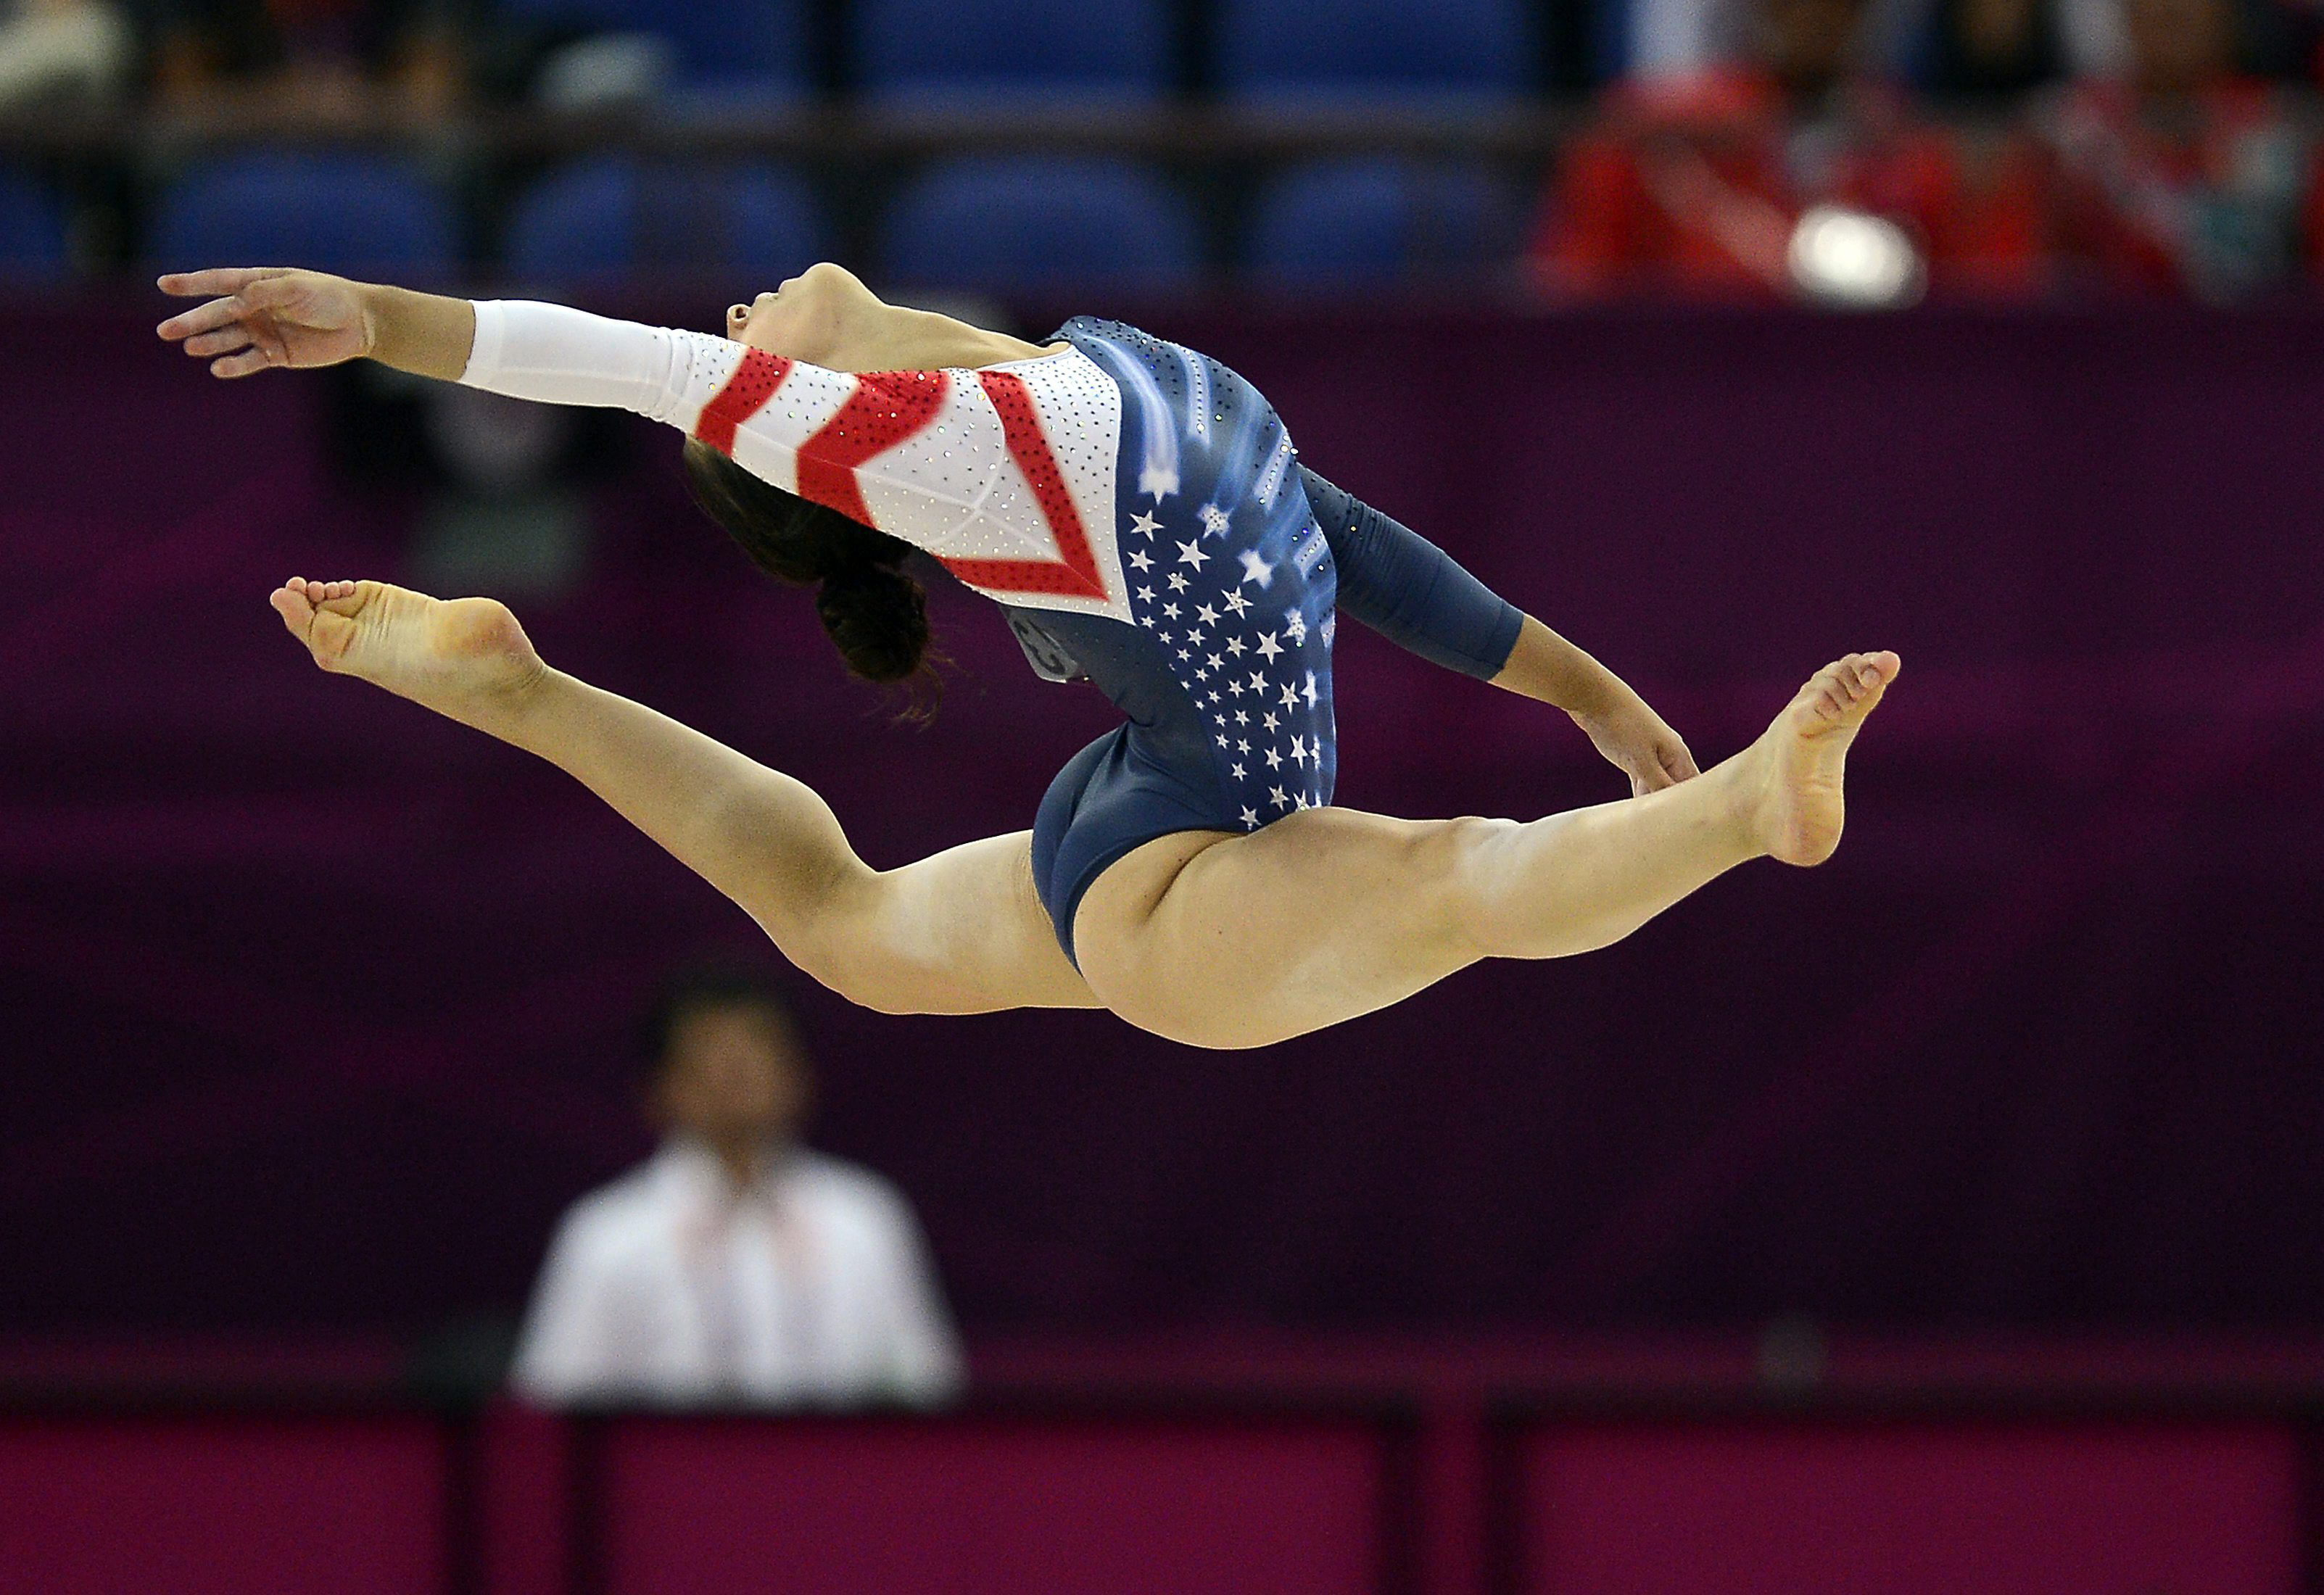 Aly Raisman On Floor Gymnastics